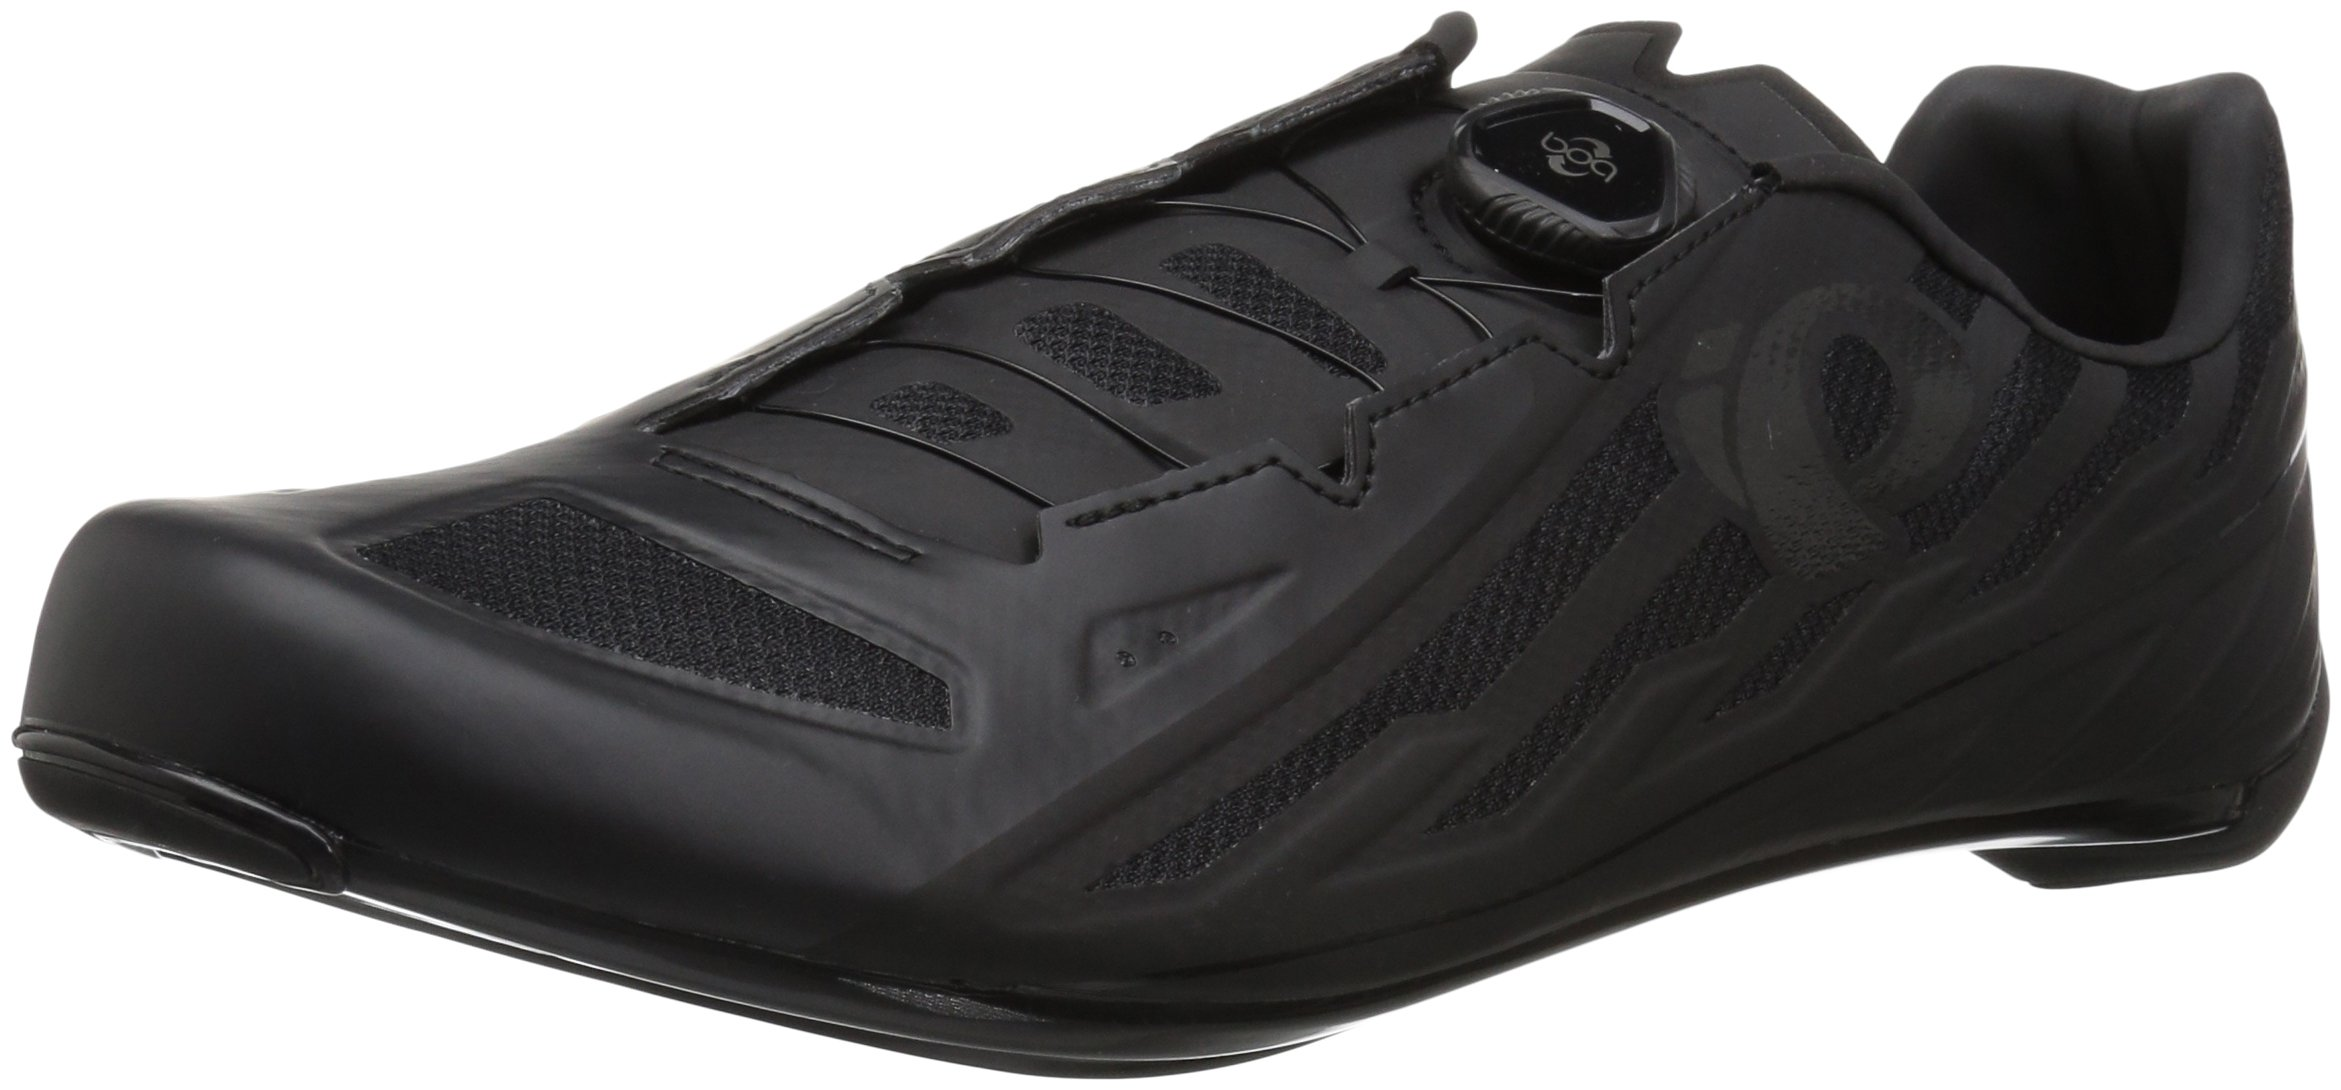 Pearl iZUMi Men's Race Road v5 Cycling Shoe, Black/Black, 39.0 M EU (6.1 US)